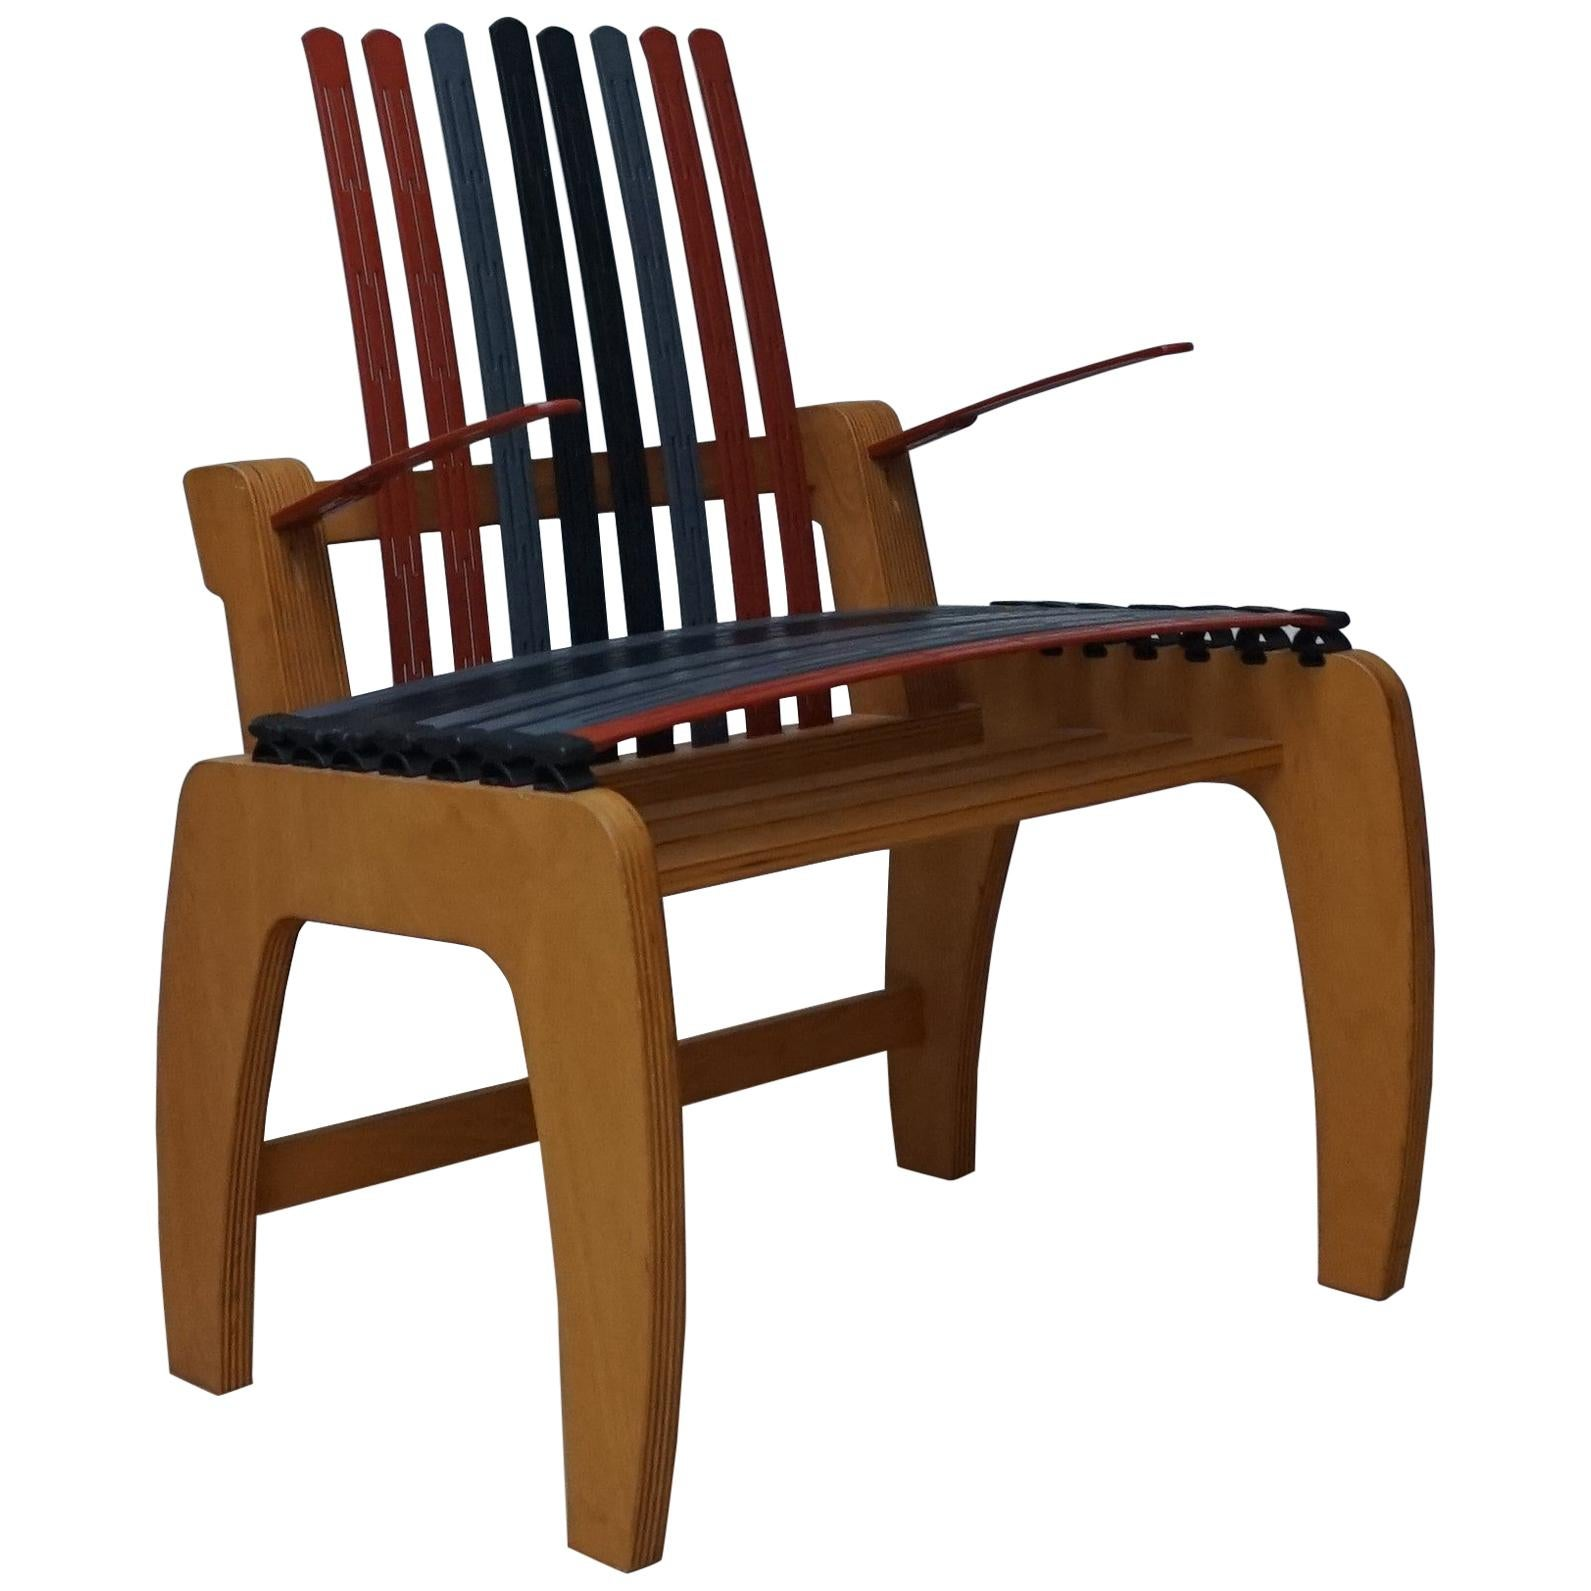 Unique, Modern Design or Concept Chair / Armchair Made of Plywood & Hard Plastic